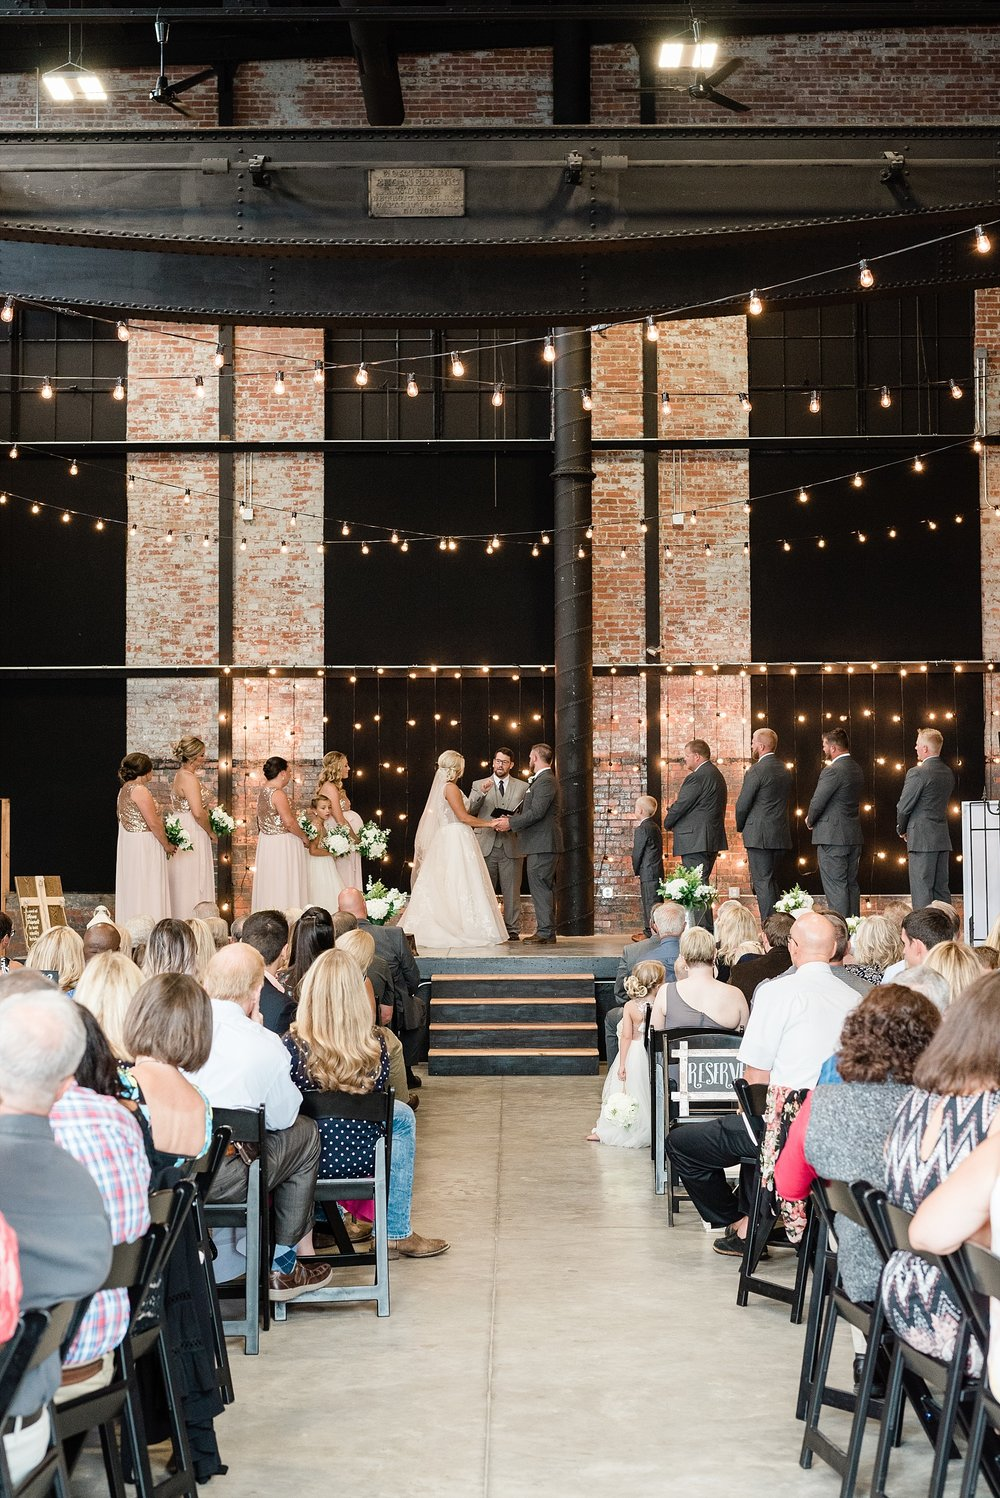 Rose Gold, White, and Greenery High Class Summer Wedding at The Millbottom in Downtown Jefferson City by Kelsi Kliethermes Photography_0040.jpg